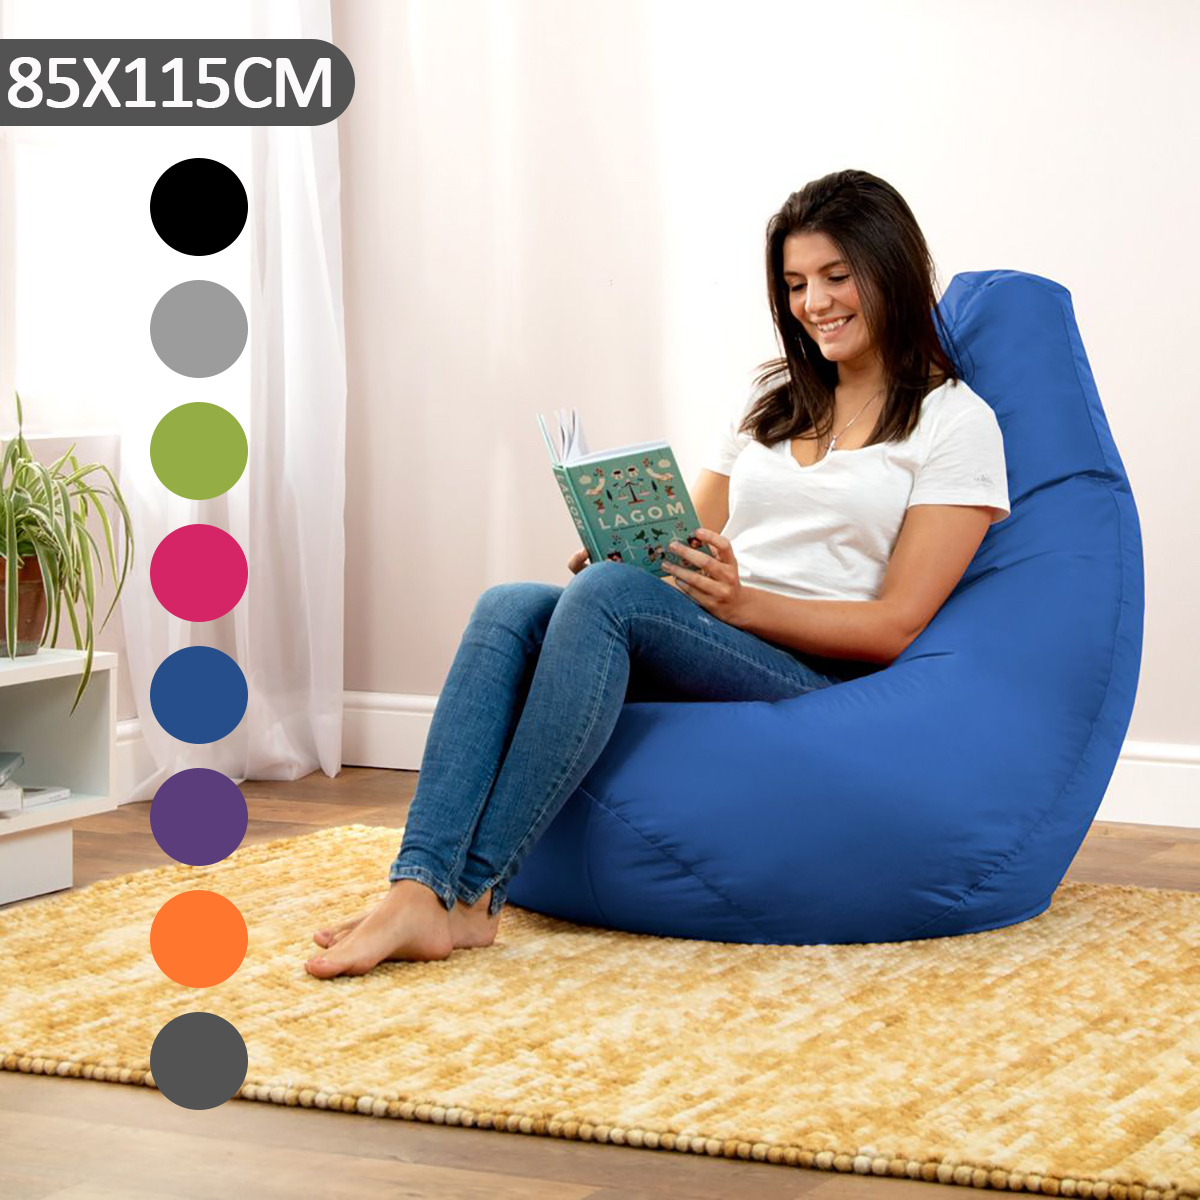 115x85cm Outdoor Portable Bean Bag Gamer Cover Adult Kids Children Seat Chair Dust Protector